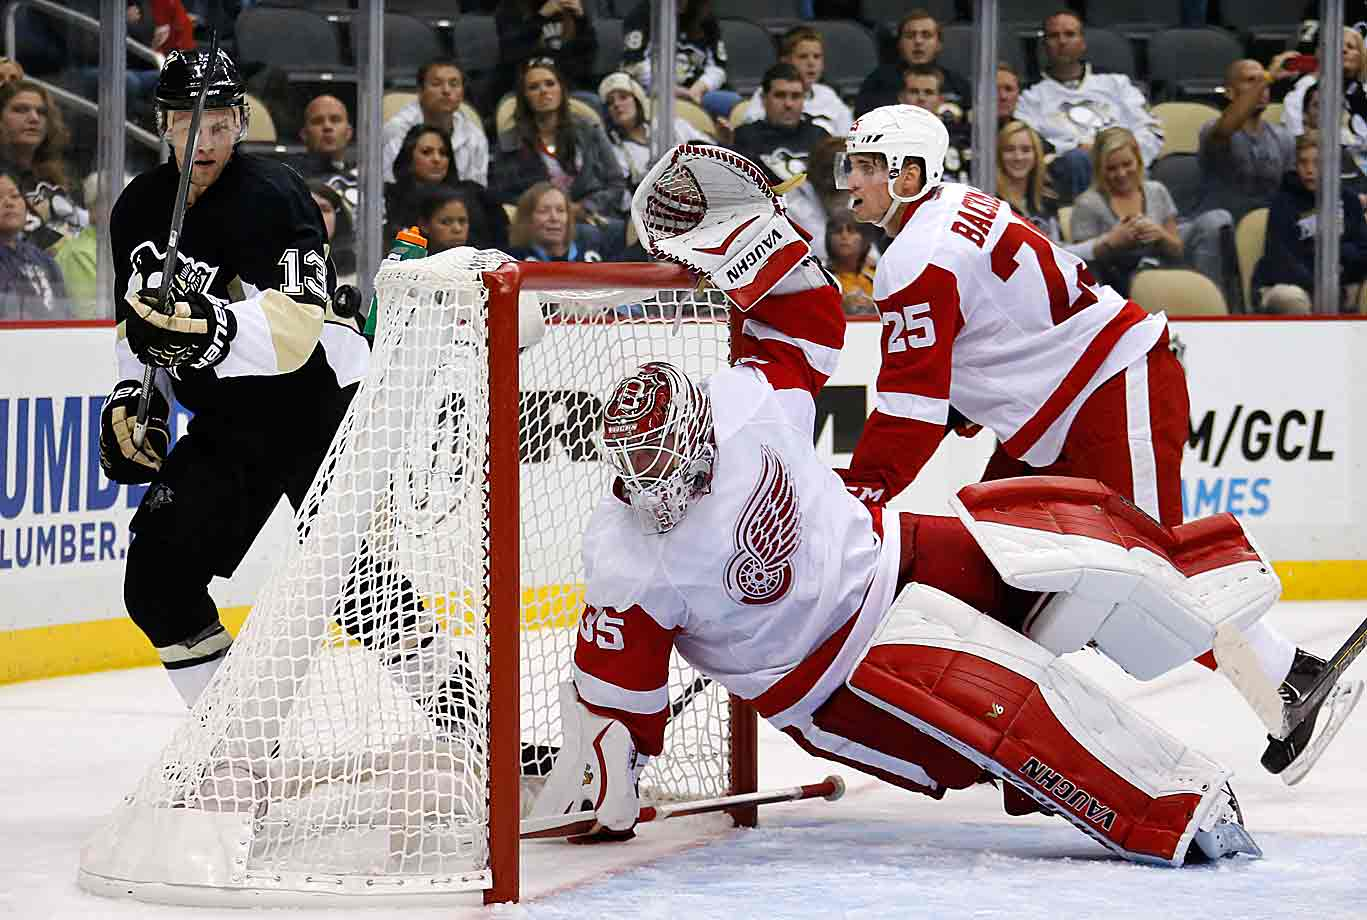 """After a season that saw his numbers (2.66 GAA, .910 save pct.) go skyward from his previous two campaigns, Howard, 30, is out to prove that he's a true franchise stopper. Granted, the injuries that ravaged the Red Wings made his job more difficult, but his inconsistency was a factor, too. With Detroit in flux but still counting on its brittle, aging stars, much responsibility will fall on Howard to keep the Wings' 23-year playoff streak alive. He spent the summer training for a bounce-back season and says he's excited by the challenge. """"The reports I get on Howie are how much work he's done,"""" coach Mike Babcock told the Detroit Free Press. """"When you do the work, you're rewarded. In life, preparation is equal to opportunity. Things go good for you. He's done the work to prepare, he'll be rewarded."""""""